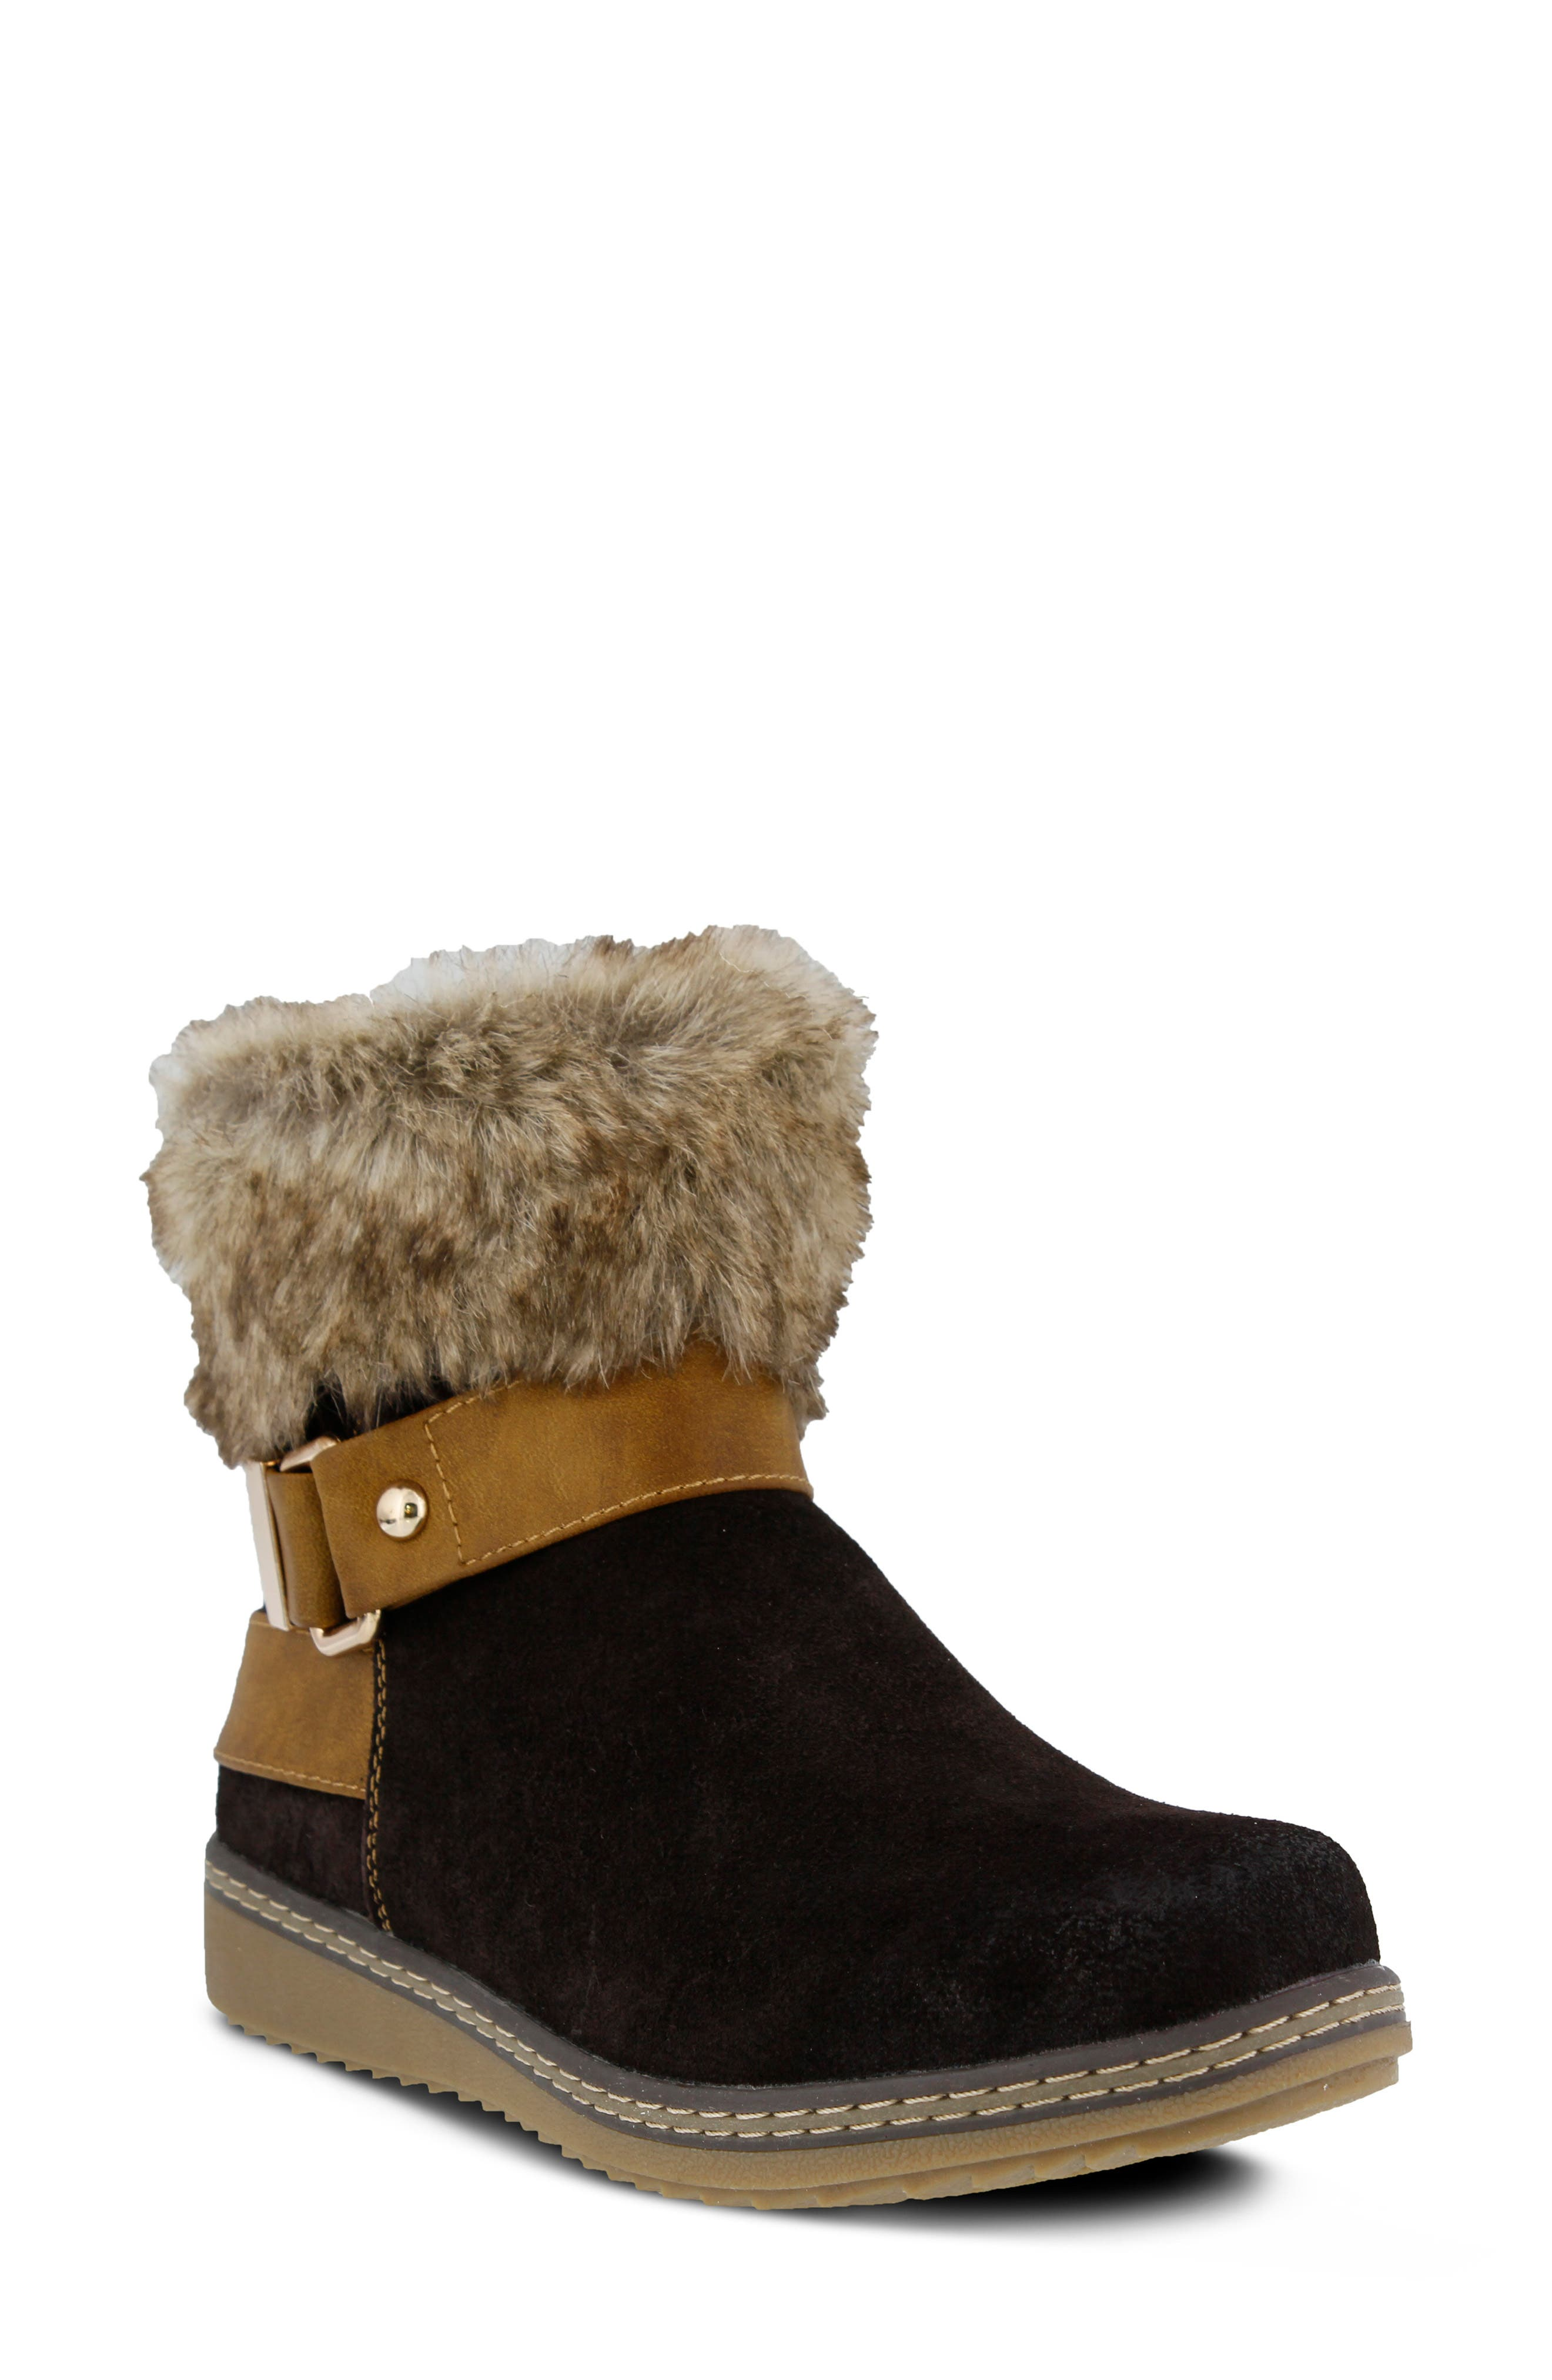 Spring Step Water Resistant Faux Fur Bootie - Brown